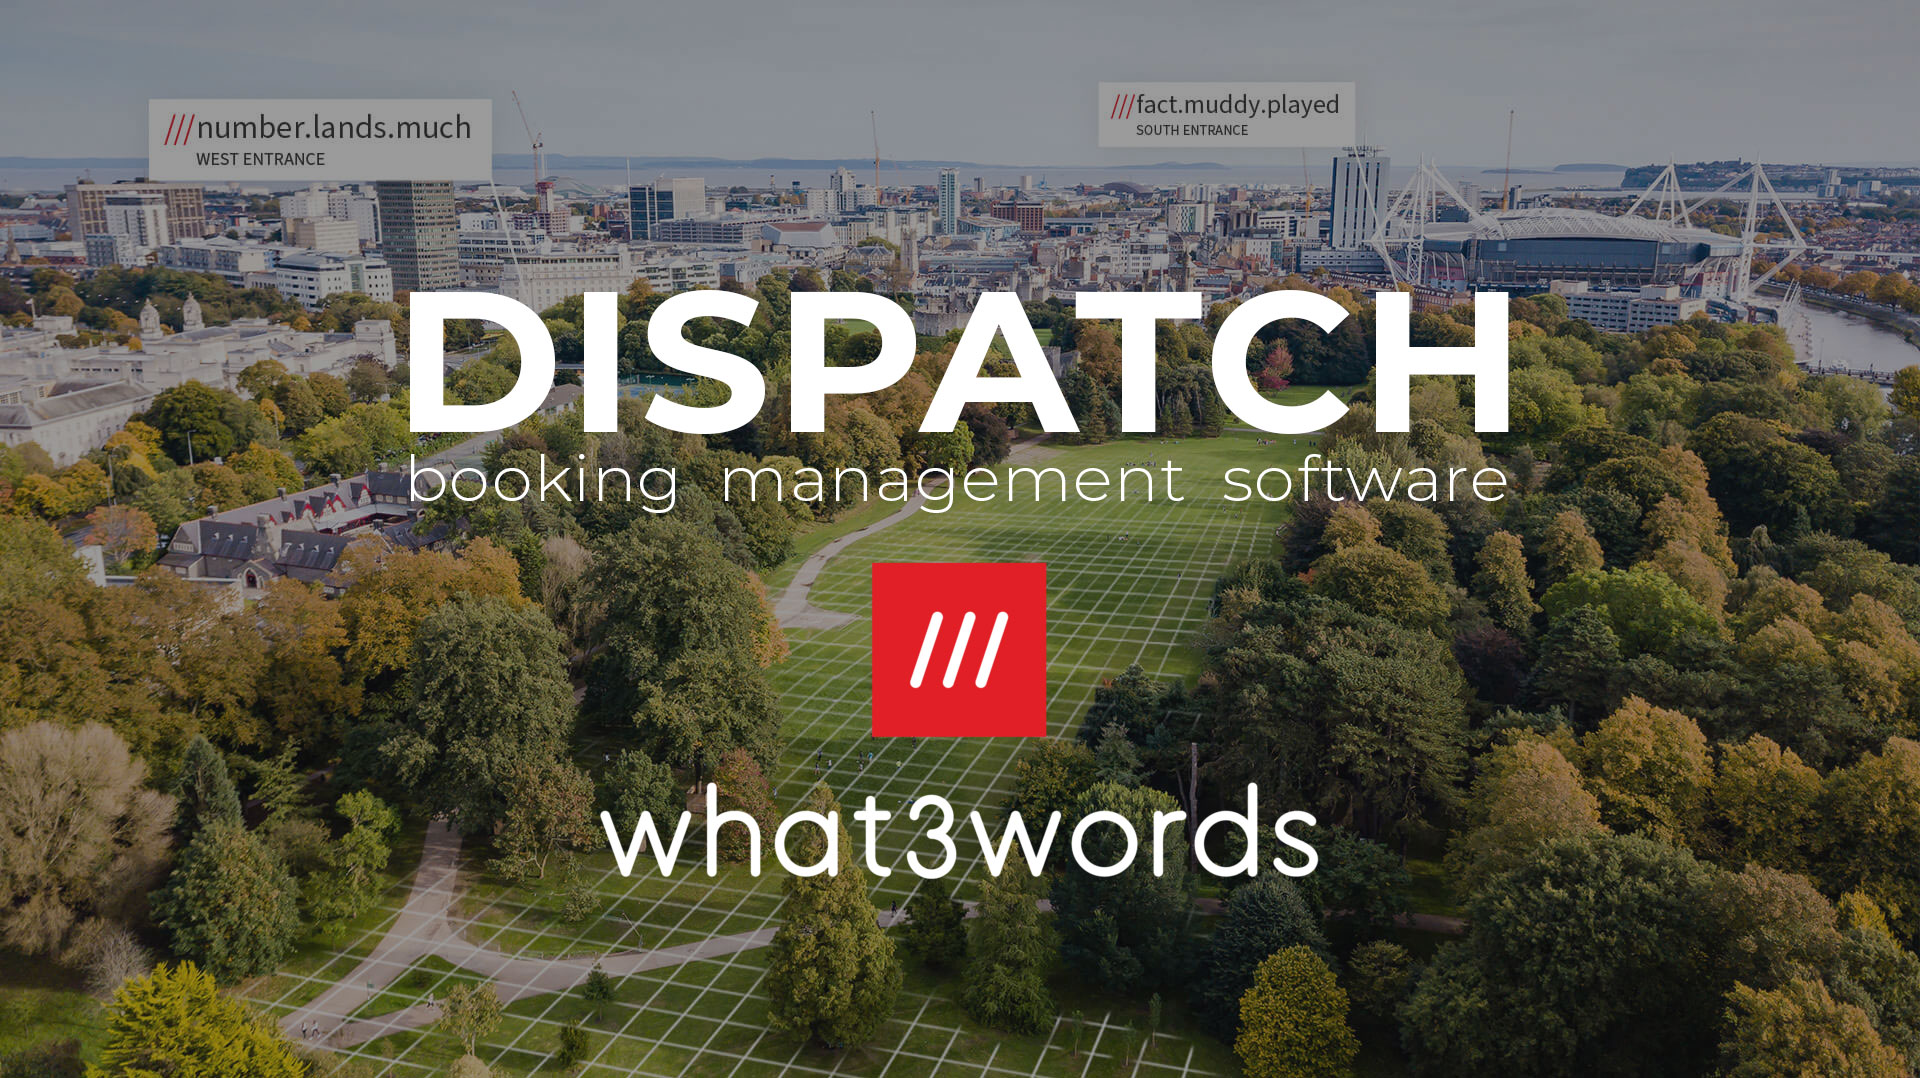 With what3words, Dispatch Booking Management Software is improving our service, so you can improve yours